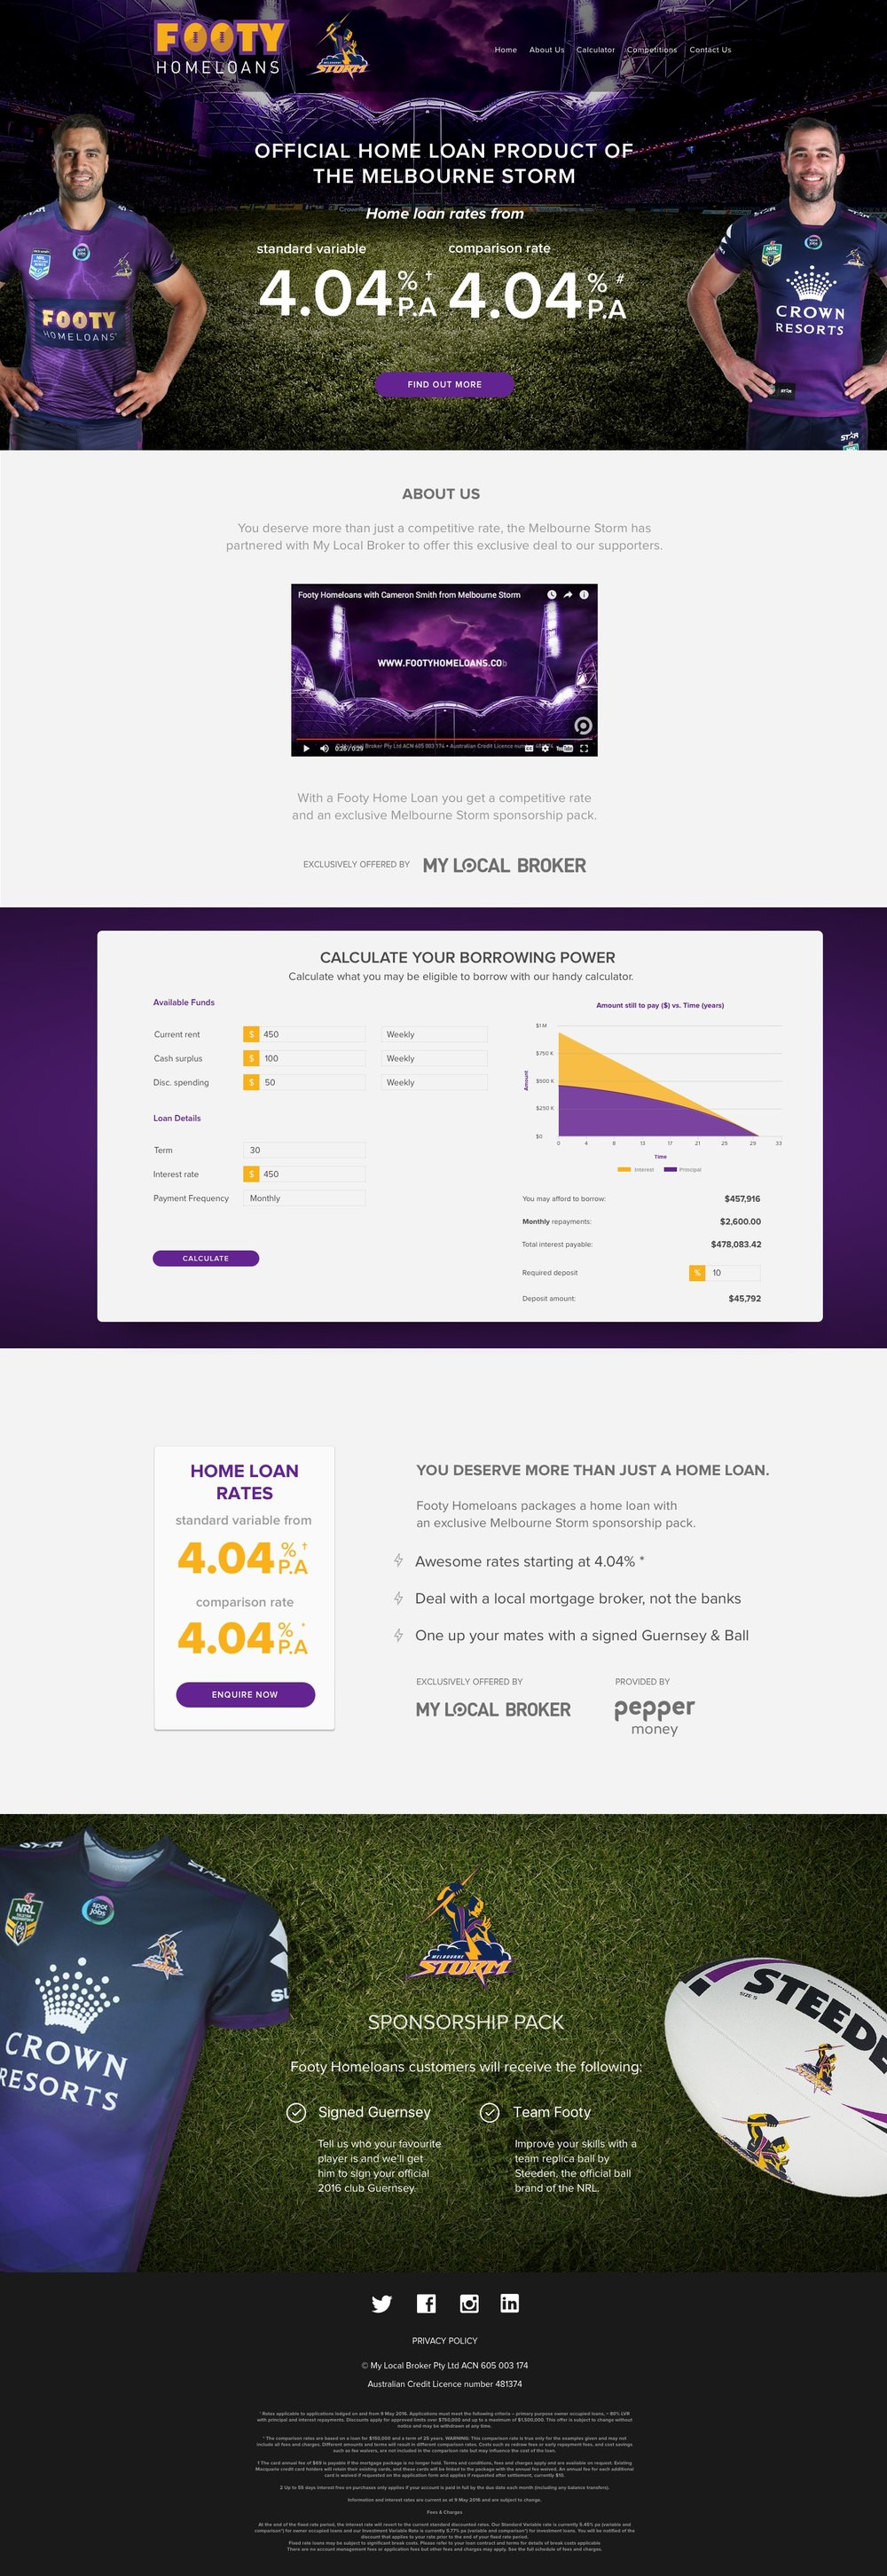 - The goal with this landing page was to create a website that fans of theMelbourne Storm could instantly feel trusted and can contact thereclosest mortgage broker to help finalise the deal.We created two versions for the landing page one which was very copy heavy and simplified version, after testing the two the simplifiedversion got more traction.